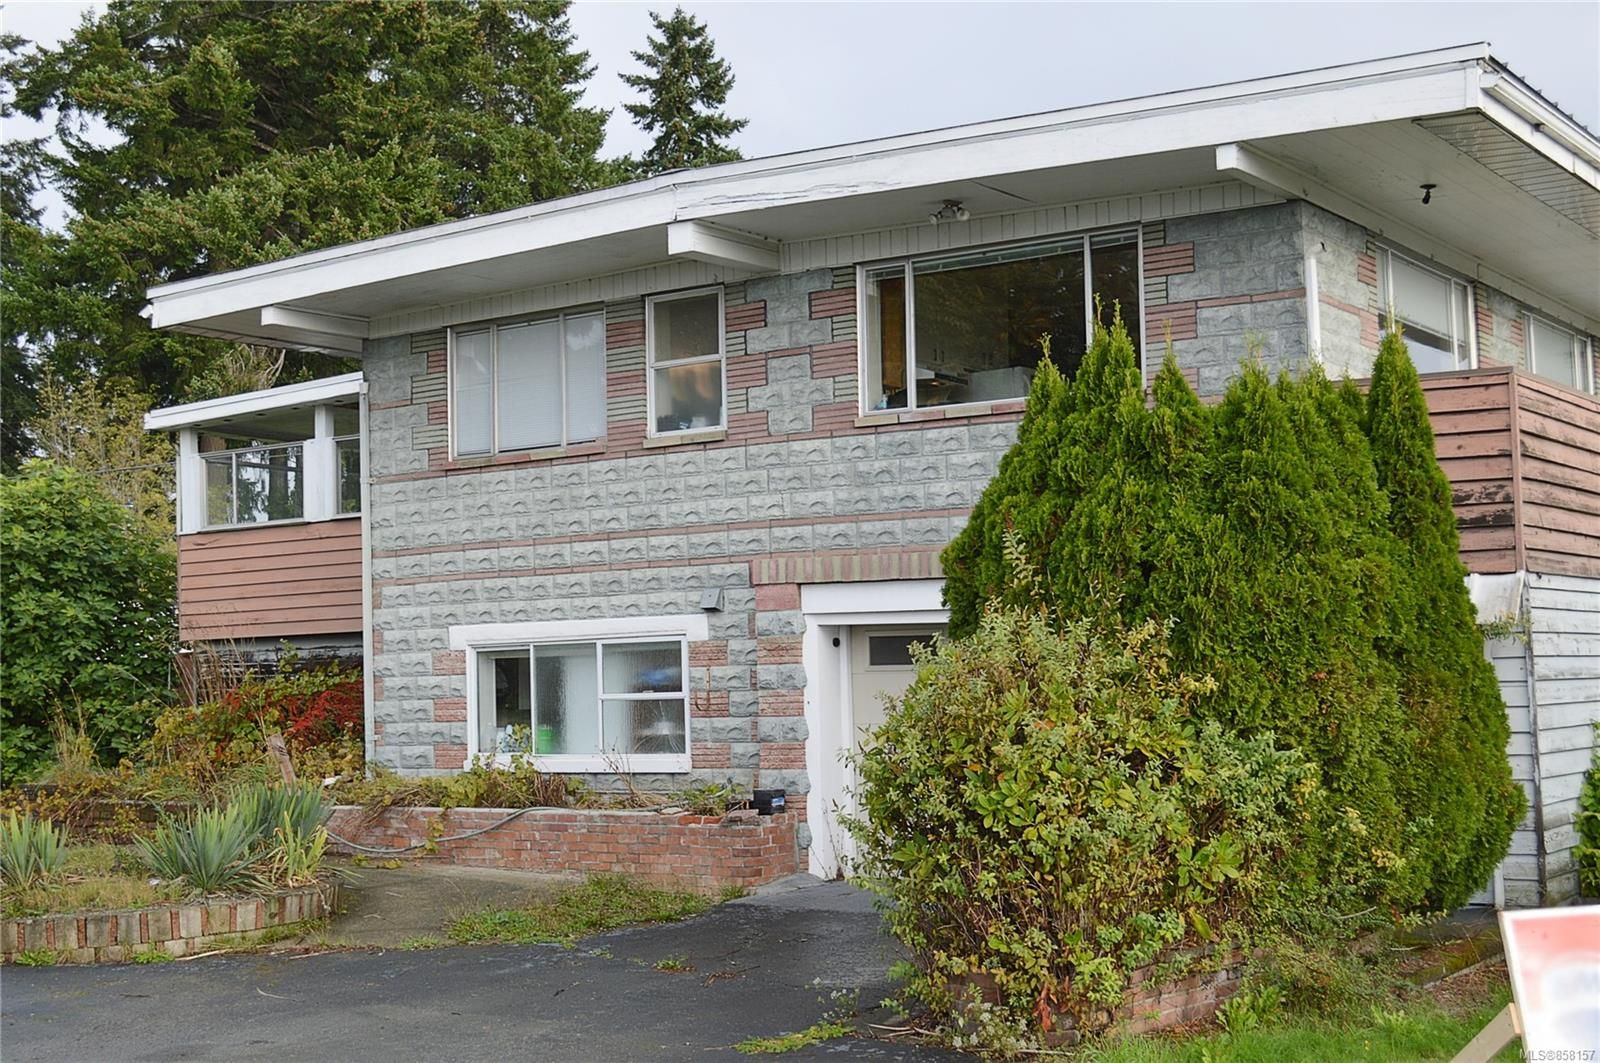 Main Photo: 5010 Cherry Creek Rd in : PA Port Alberni House for sale (Port Alberni)  : MLS®# 858157